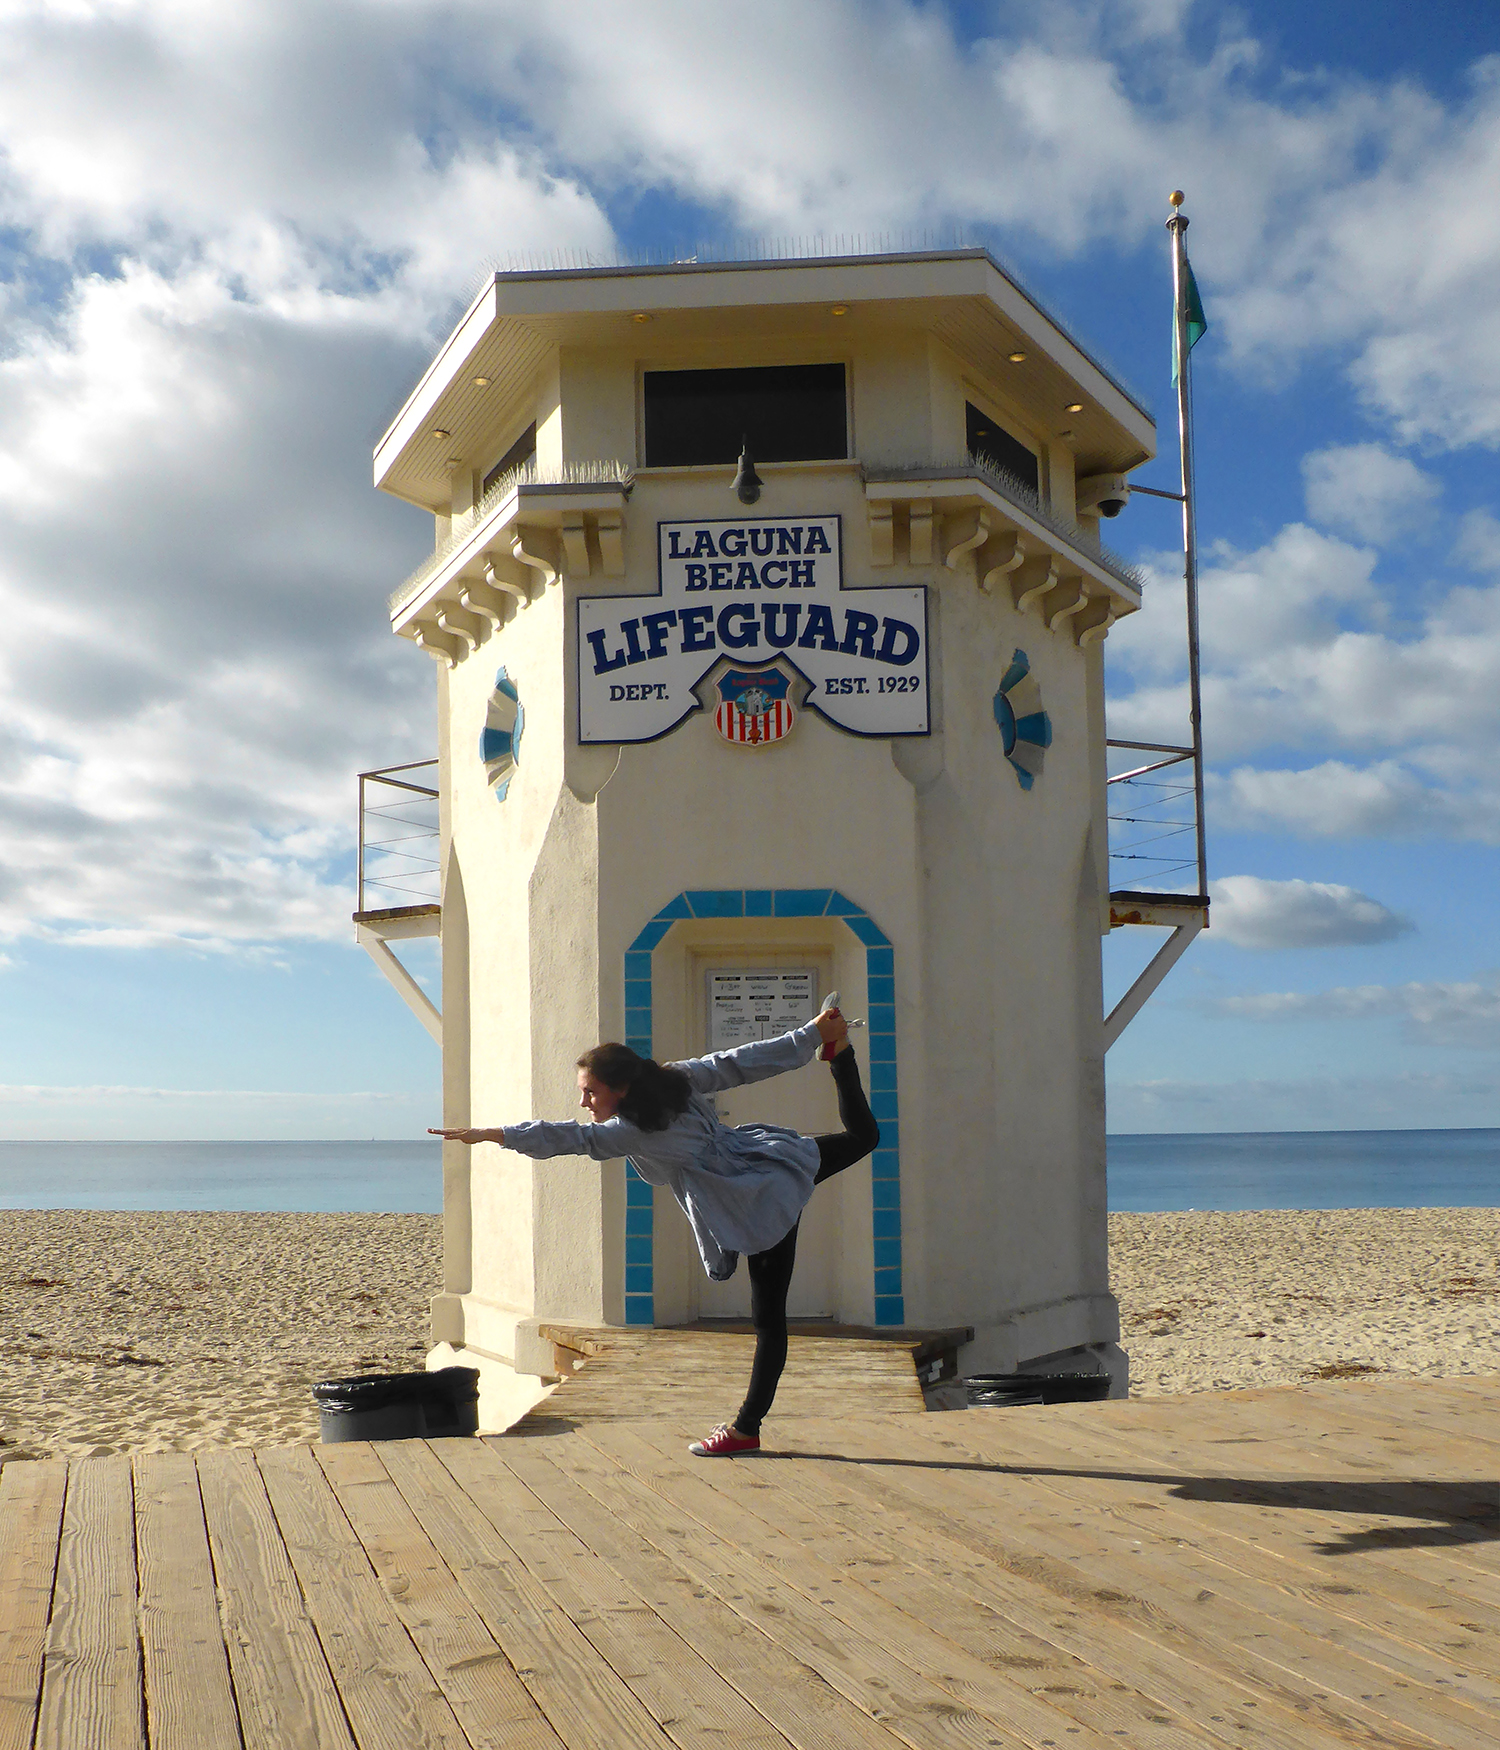 YOGI LIFEGUARD LAGUNA BEACH